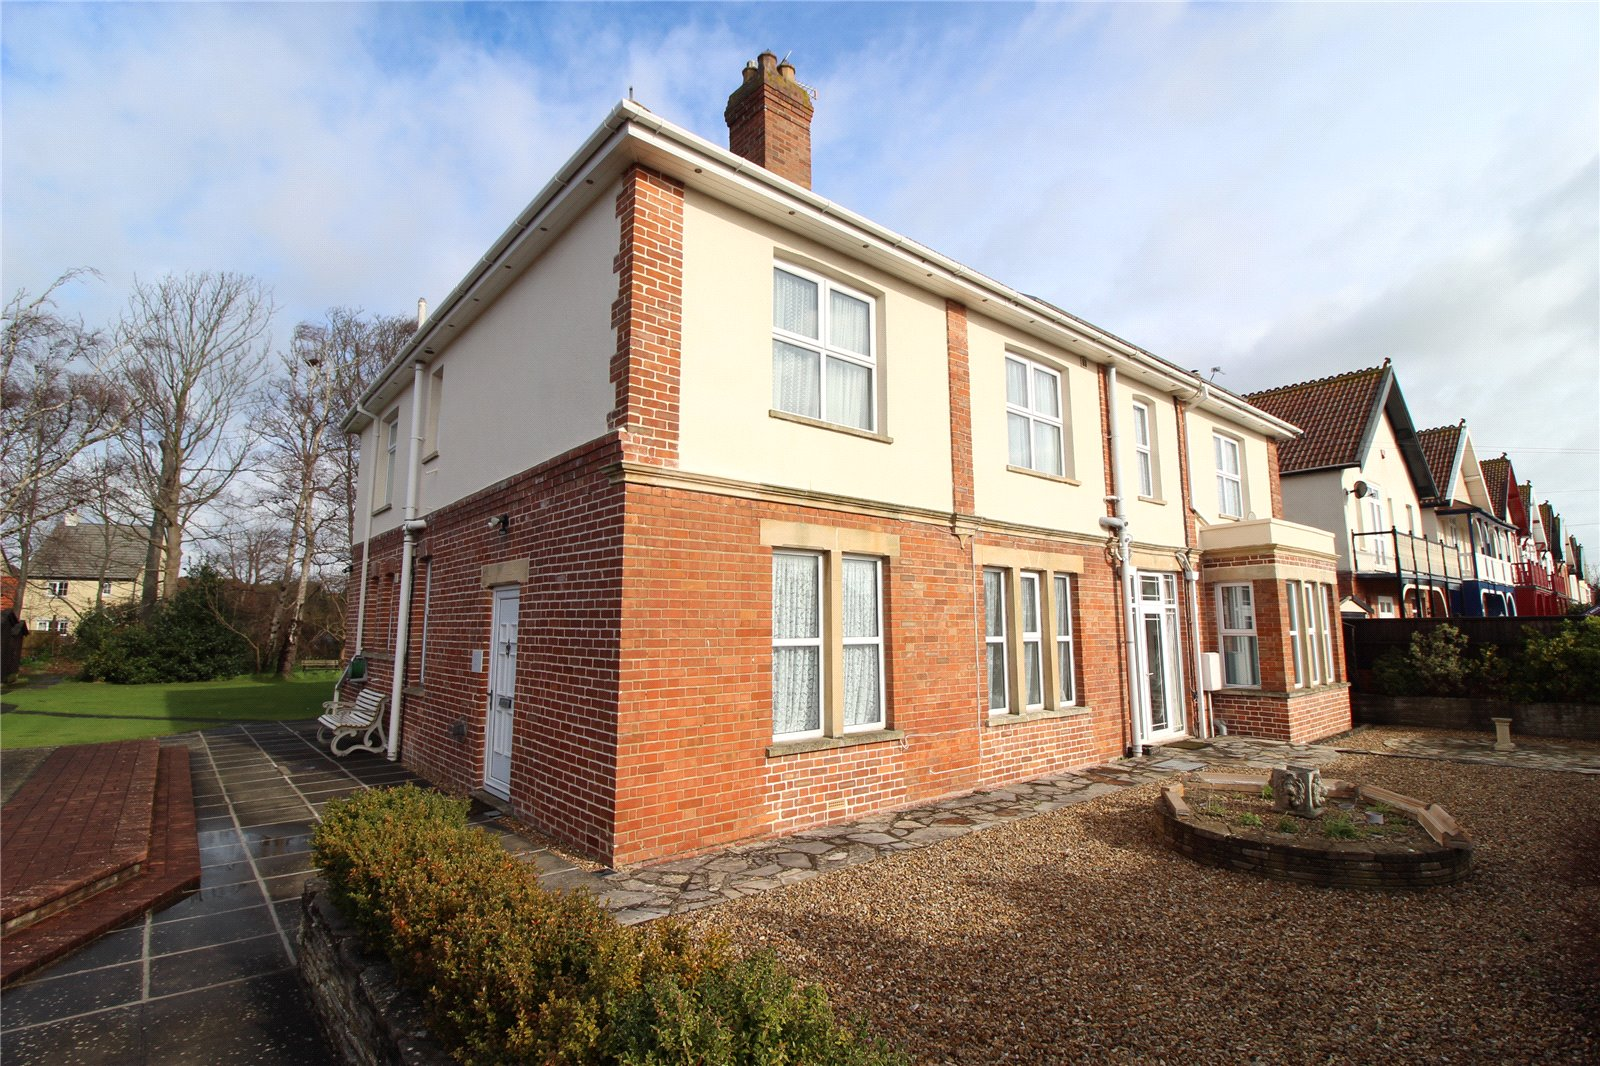 7 Bedrooms Detached House for sale in Golf Links Road Burnham on Sea Somerset TA8